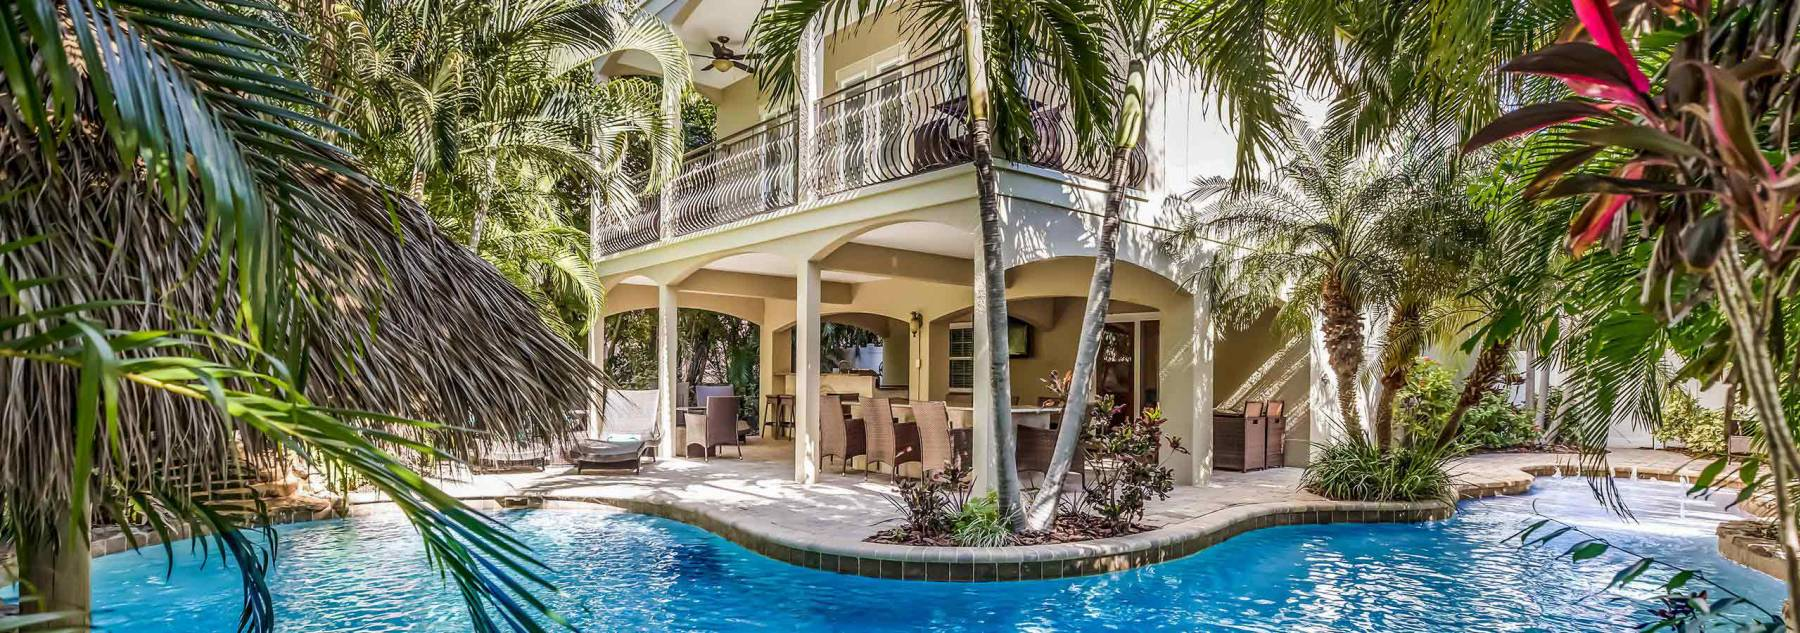 great-pool-home-vacation-rentals-anna-maria-island